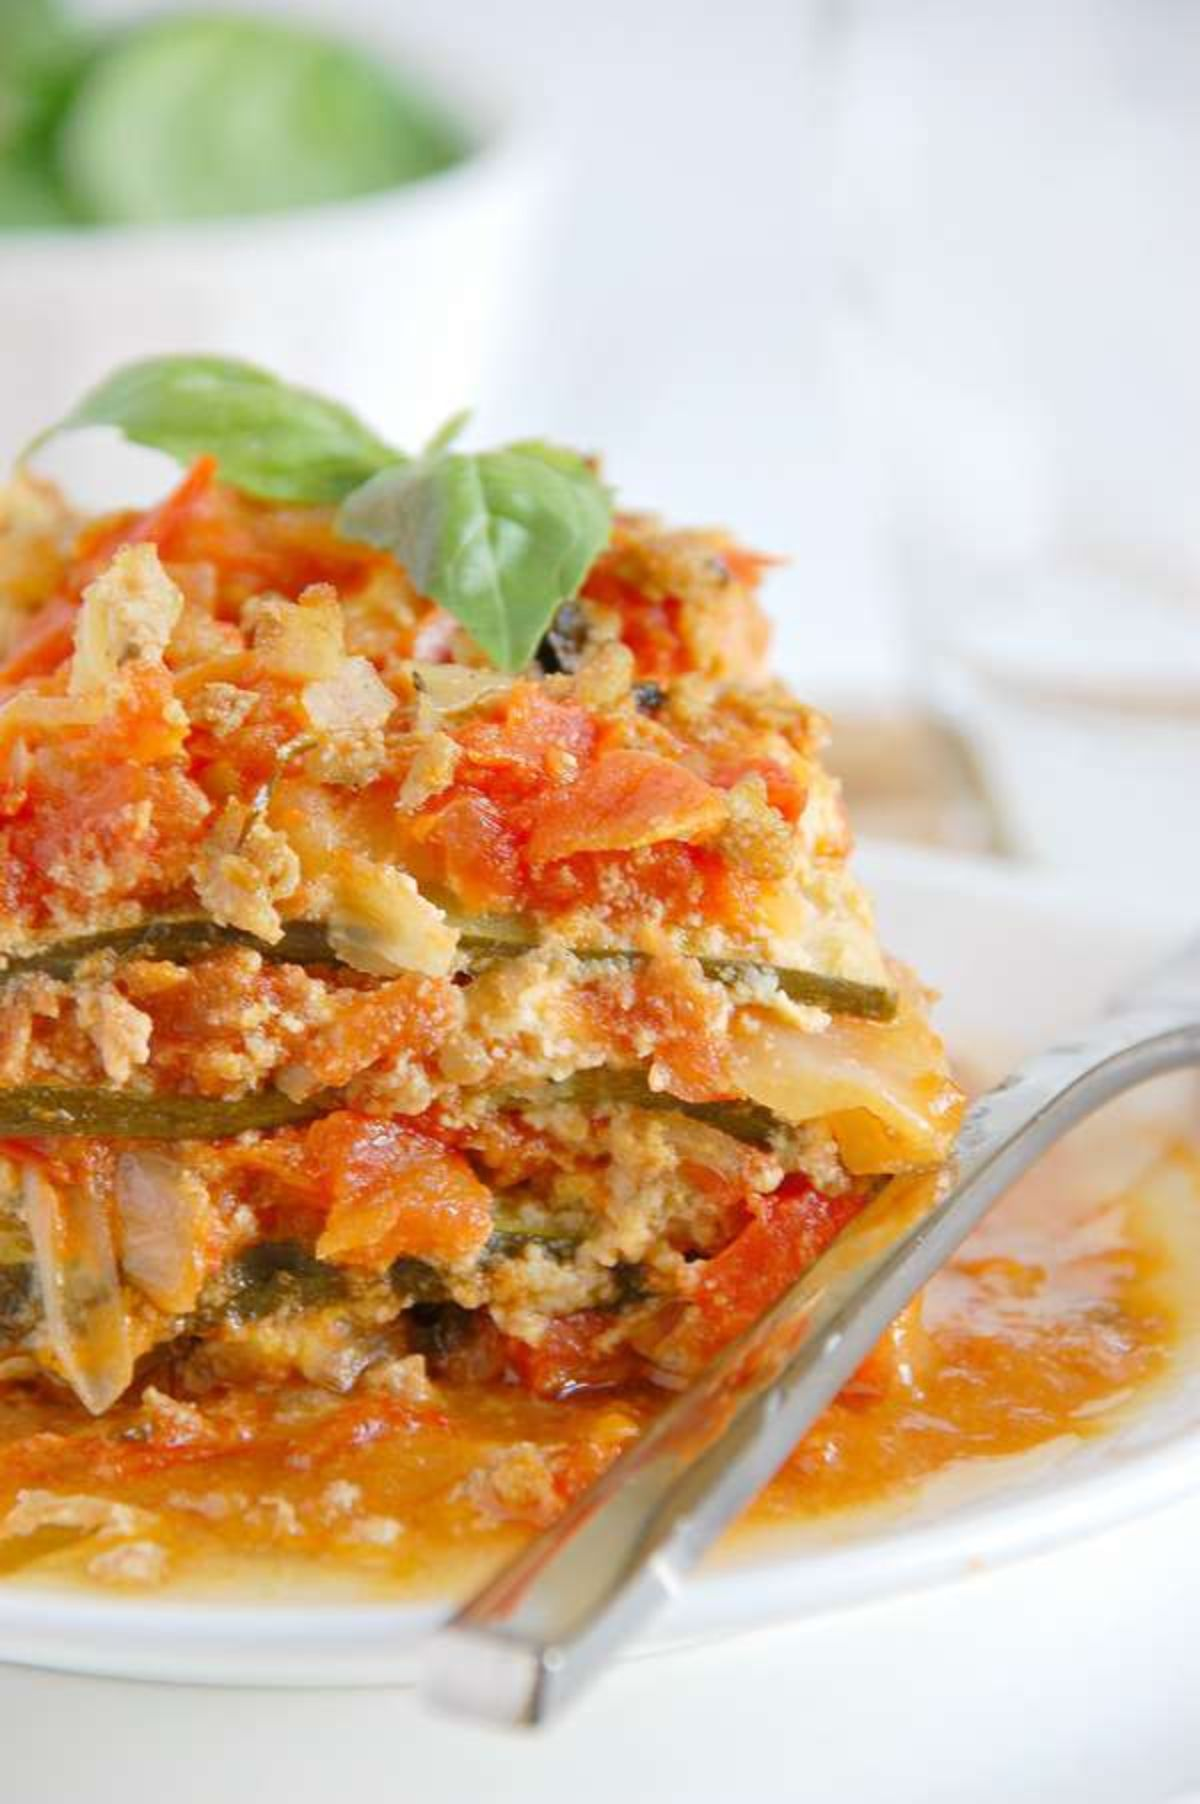 A partial shot of a plate with a portion of zucchini lasagne and a kinfe